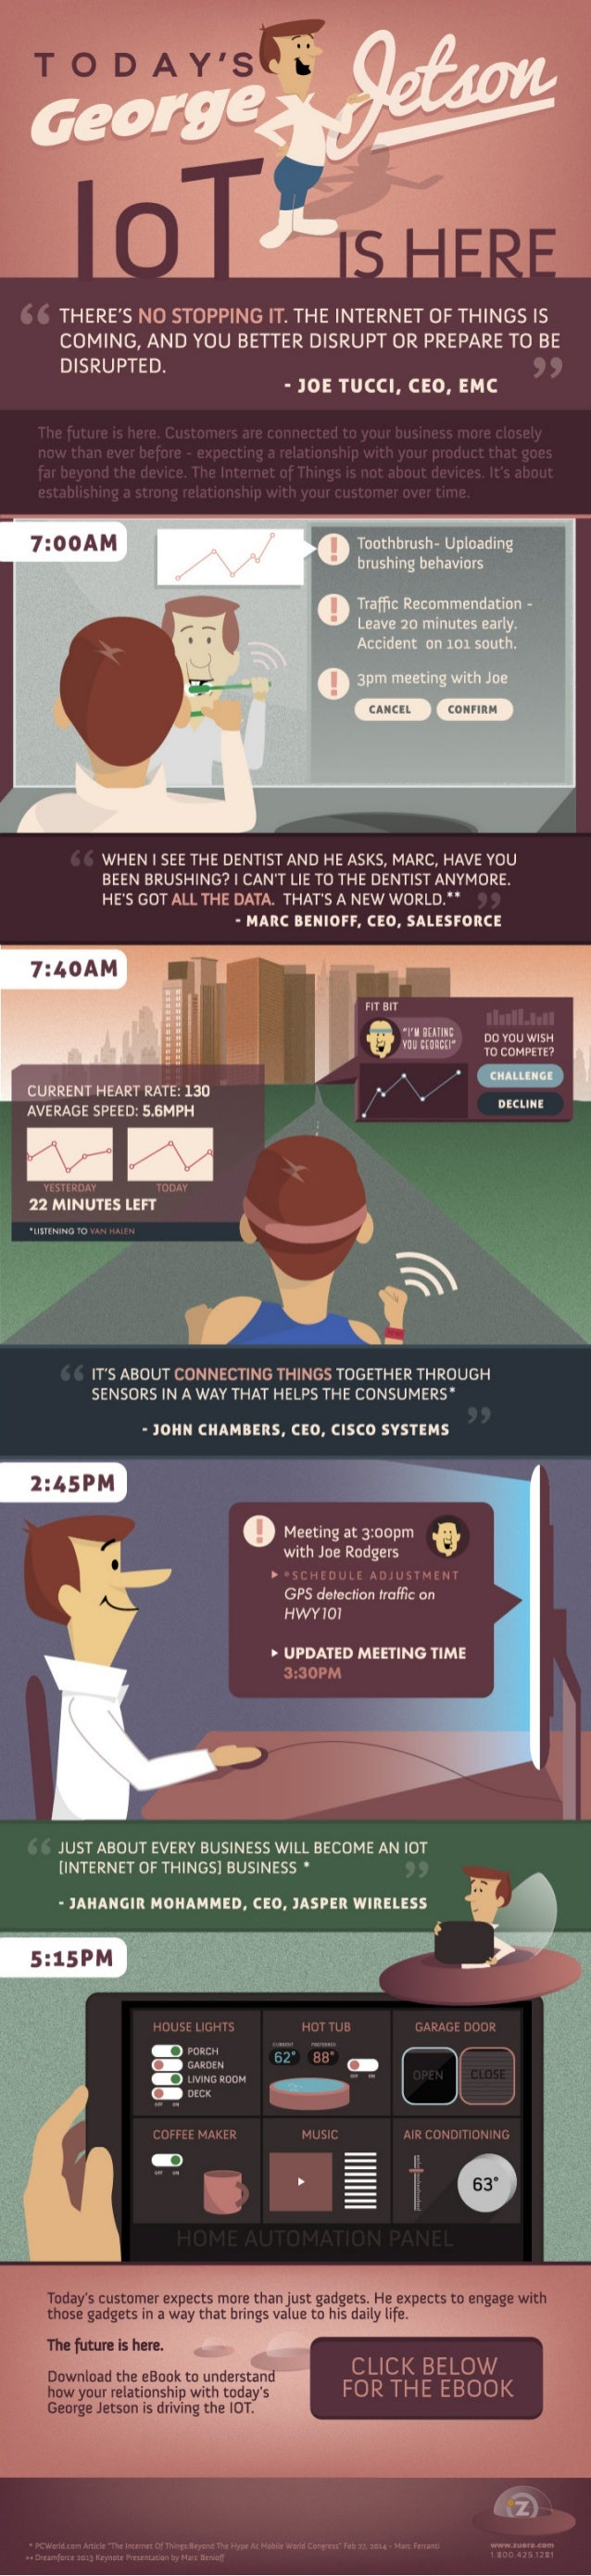 Internet of Things: Today's George Jetson